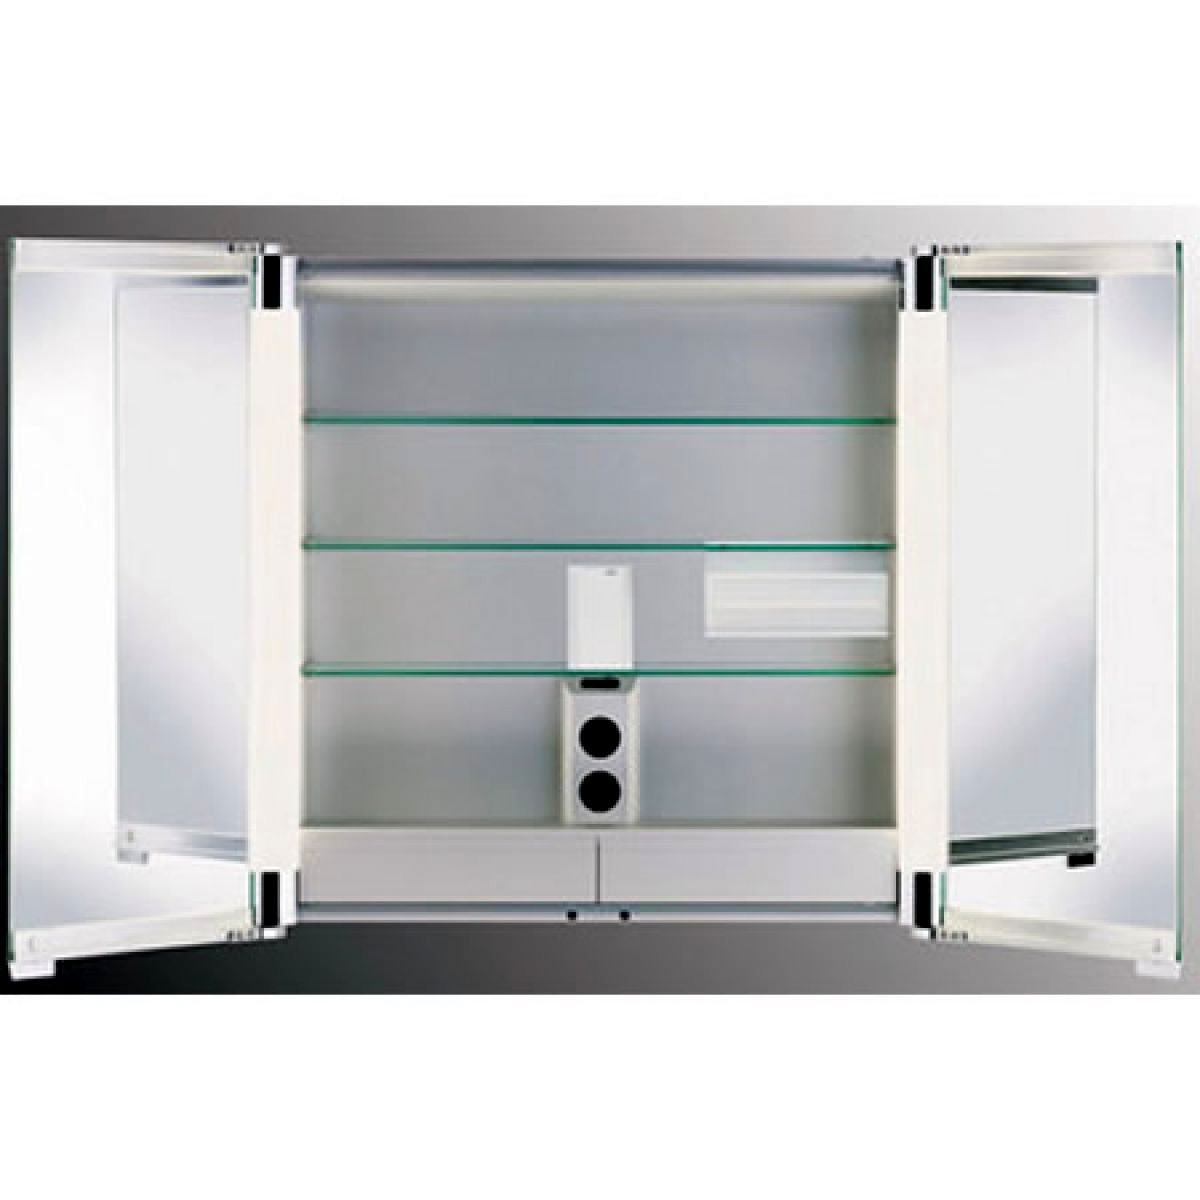 Keuco royal t2 mirror cabinet uk bathrooms - Bathroom cabinets keuco ...